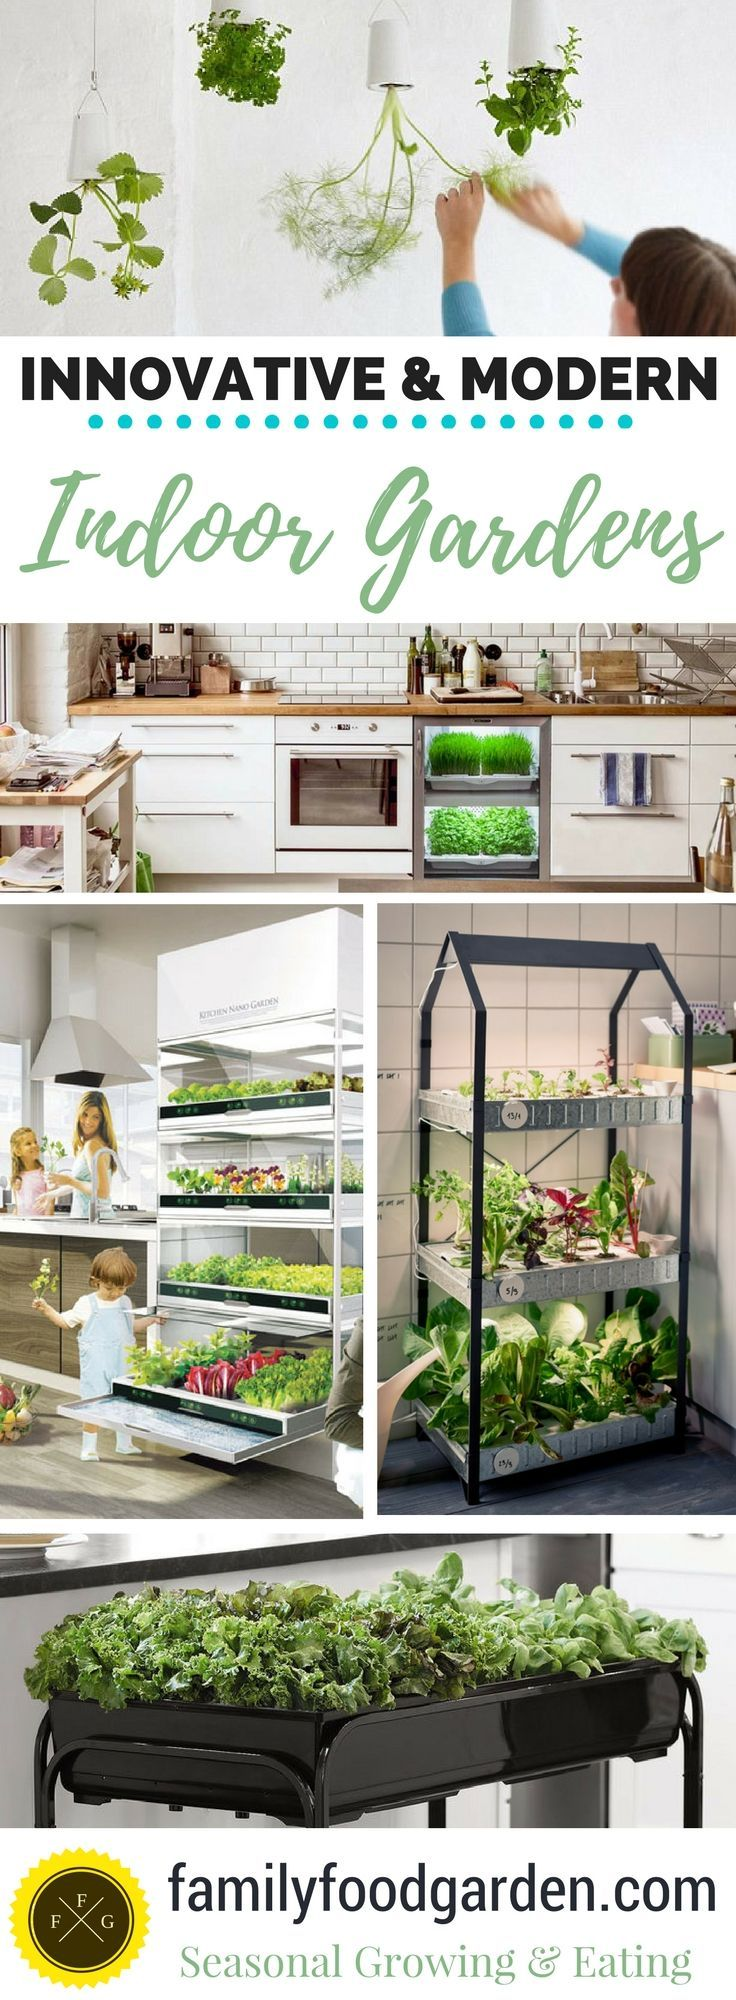 Indoor Gardening- Grow with the ways of the future